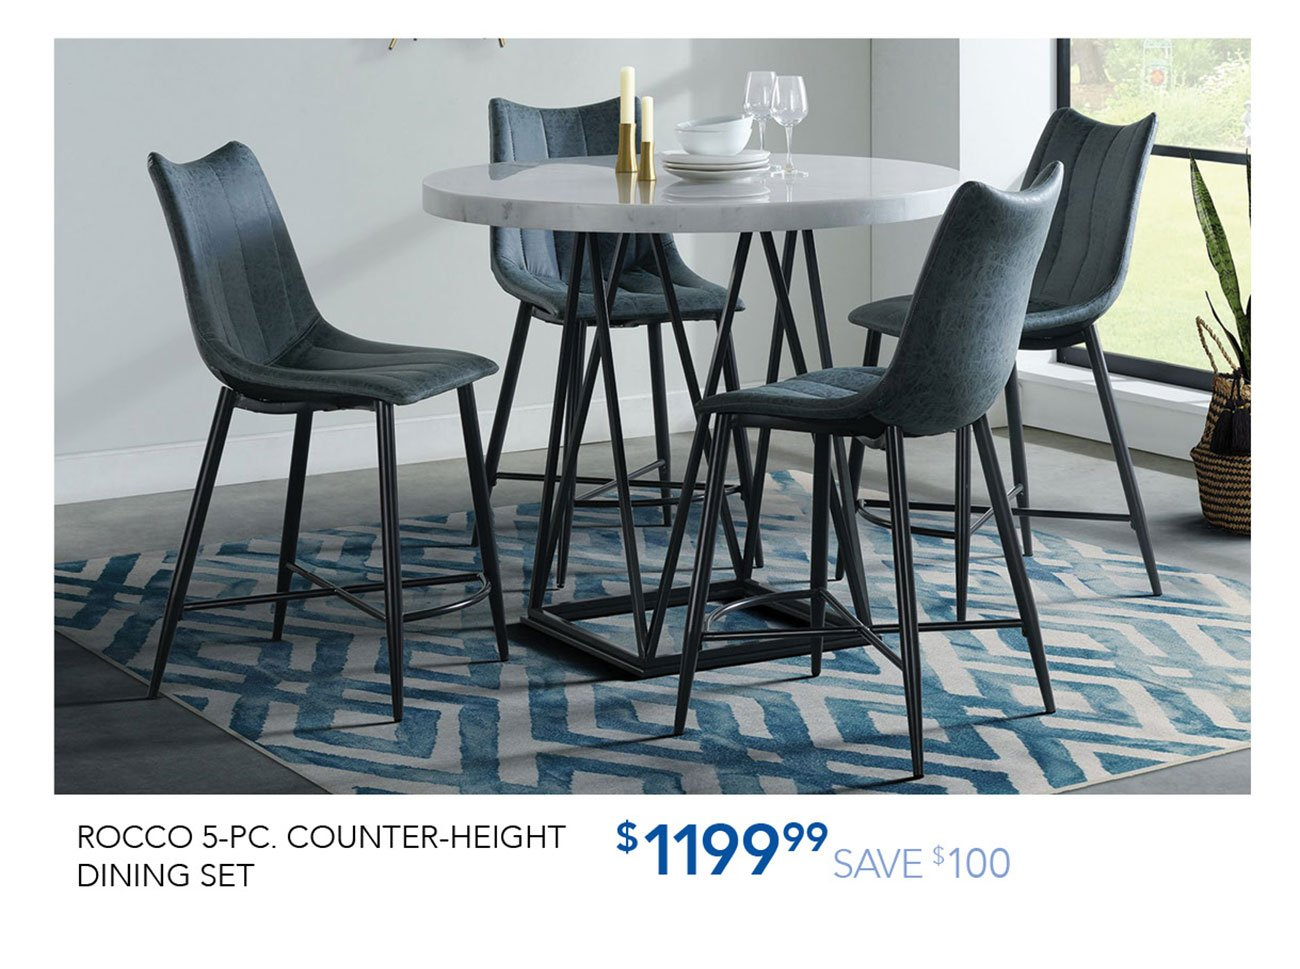 Rocco-counter-height-dining-set